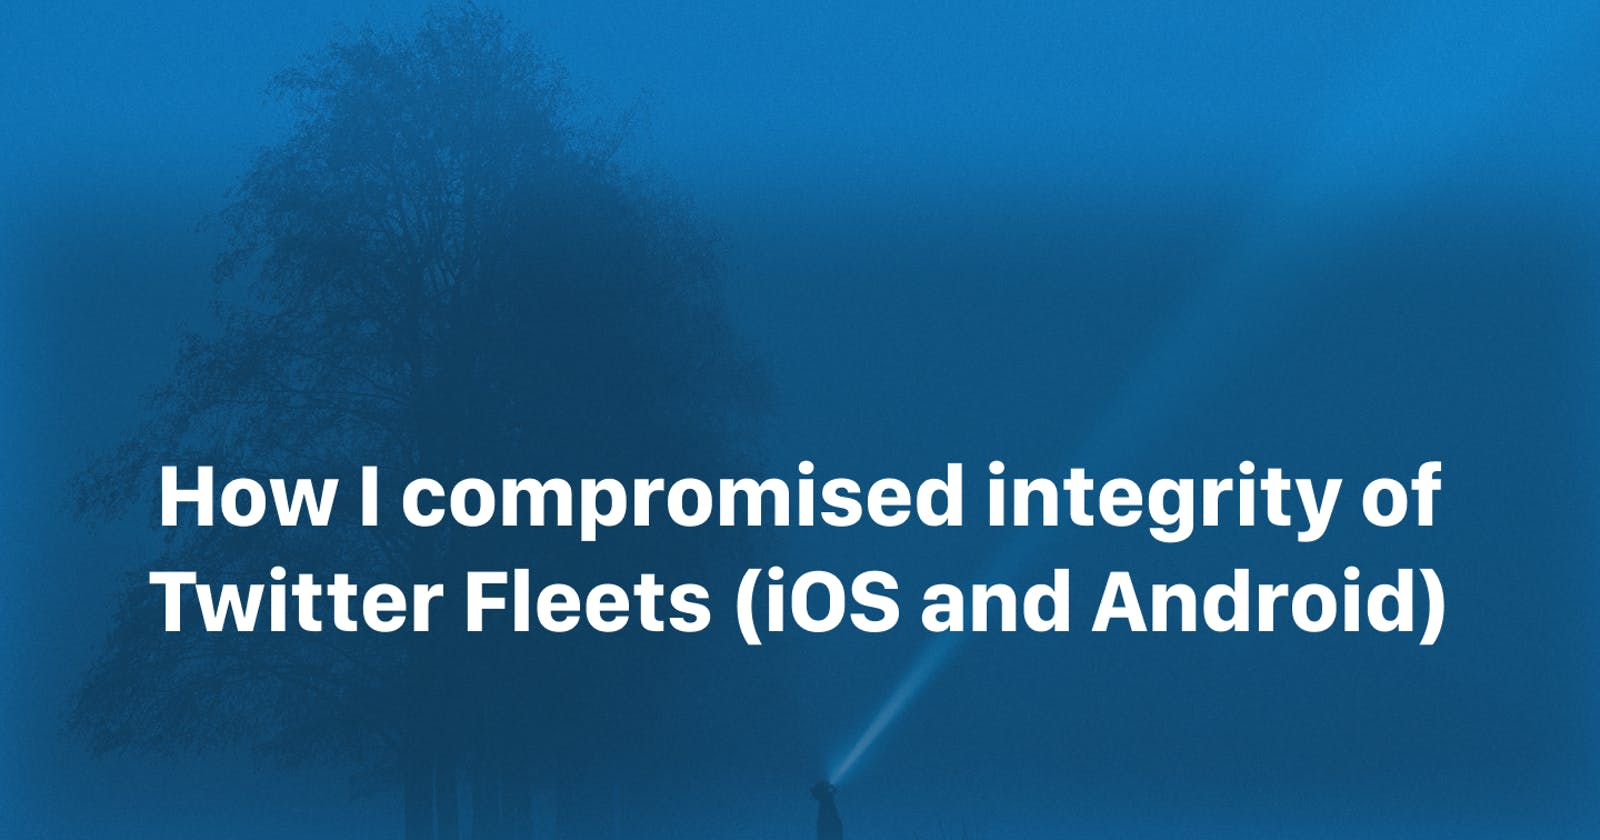 How I compromised integrity of Twitter Fleets (iOS and Android)